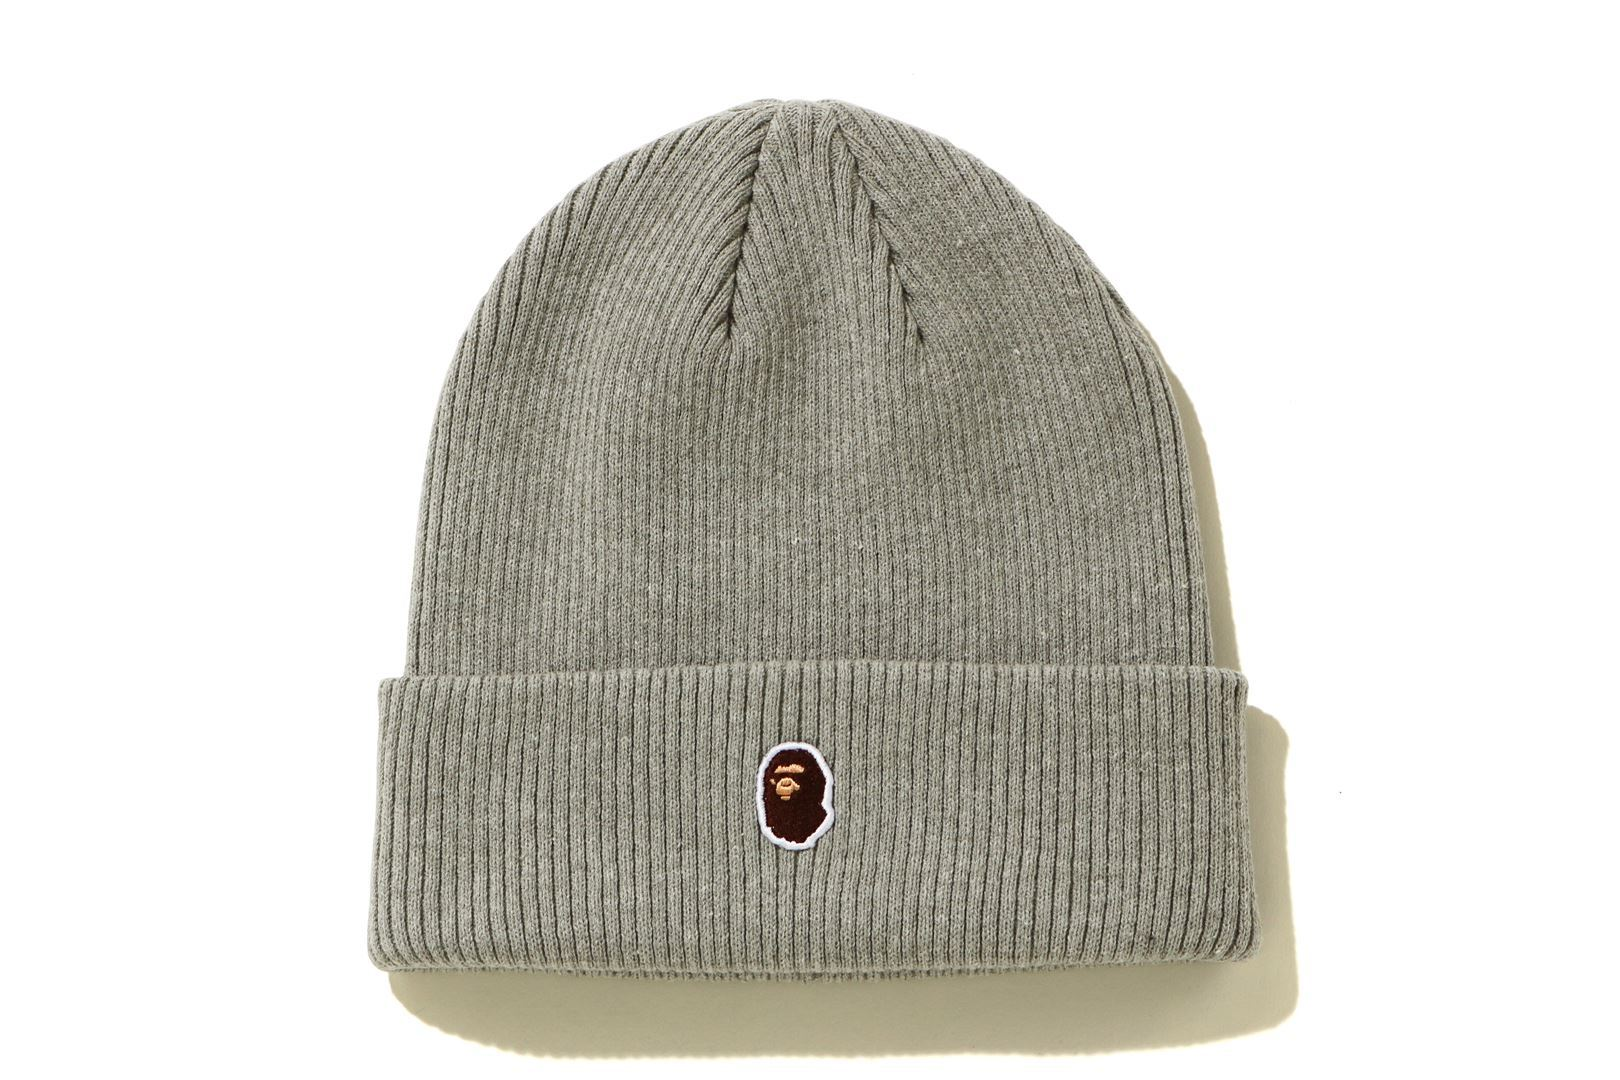 APE HEAD ONE POINT KNIT CAP_a0174495_16195253.jpg